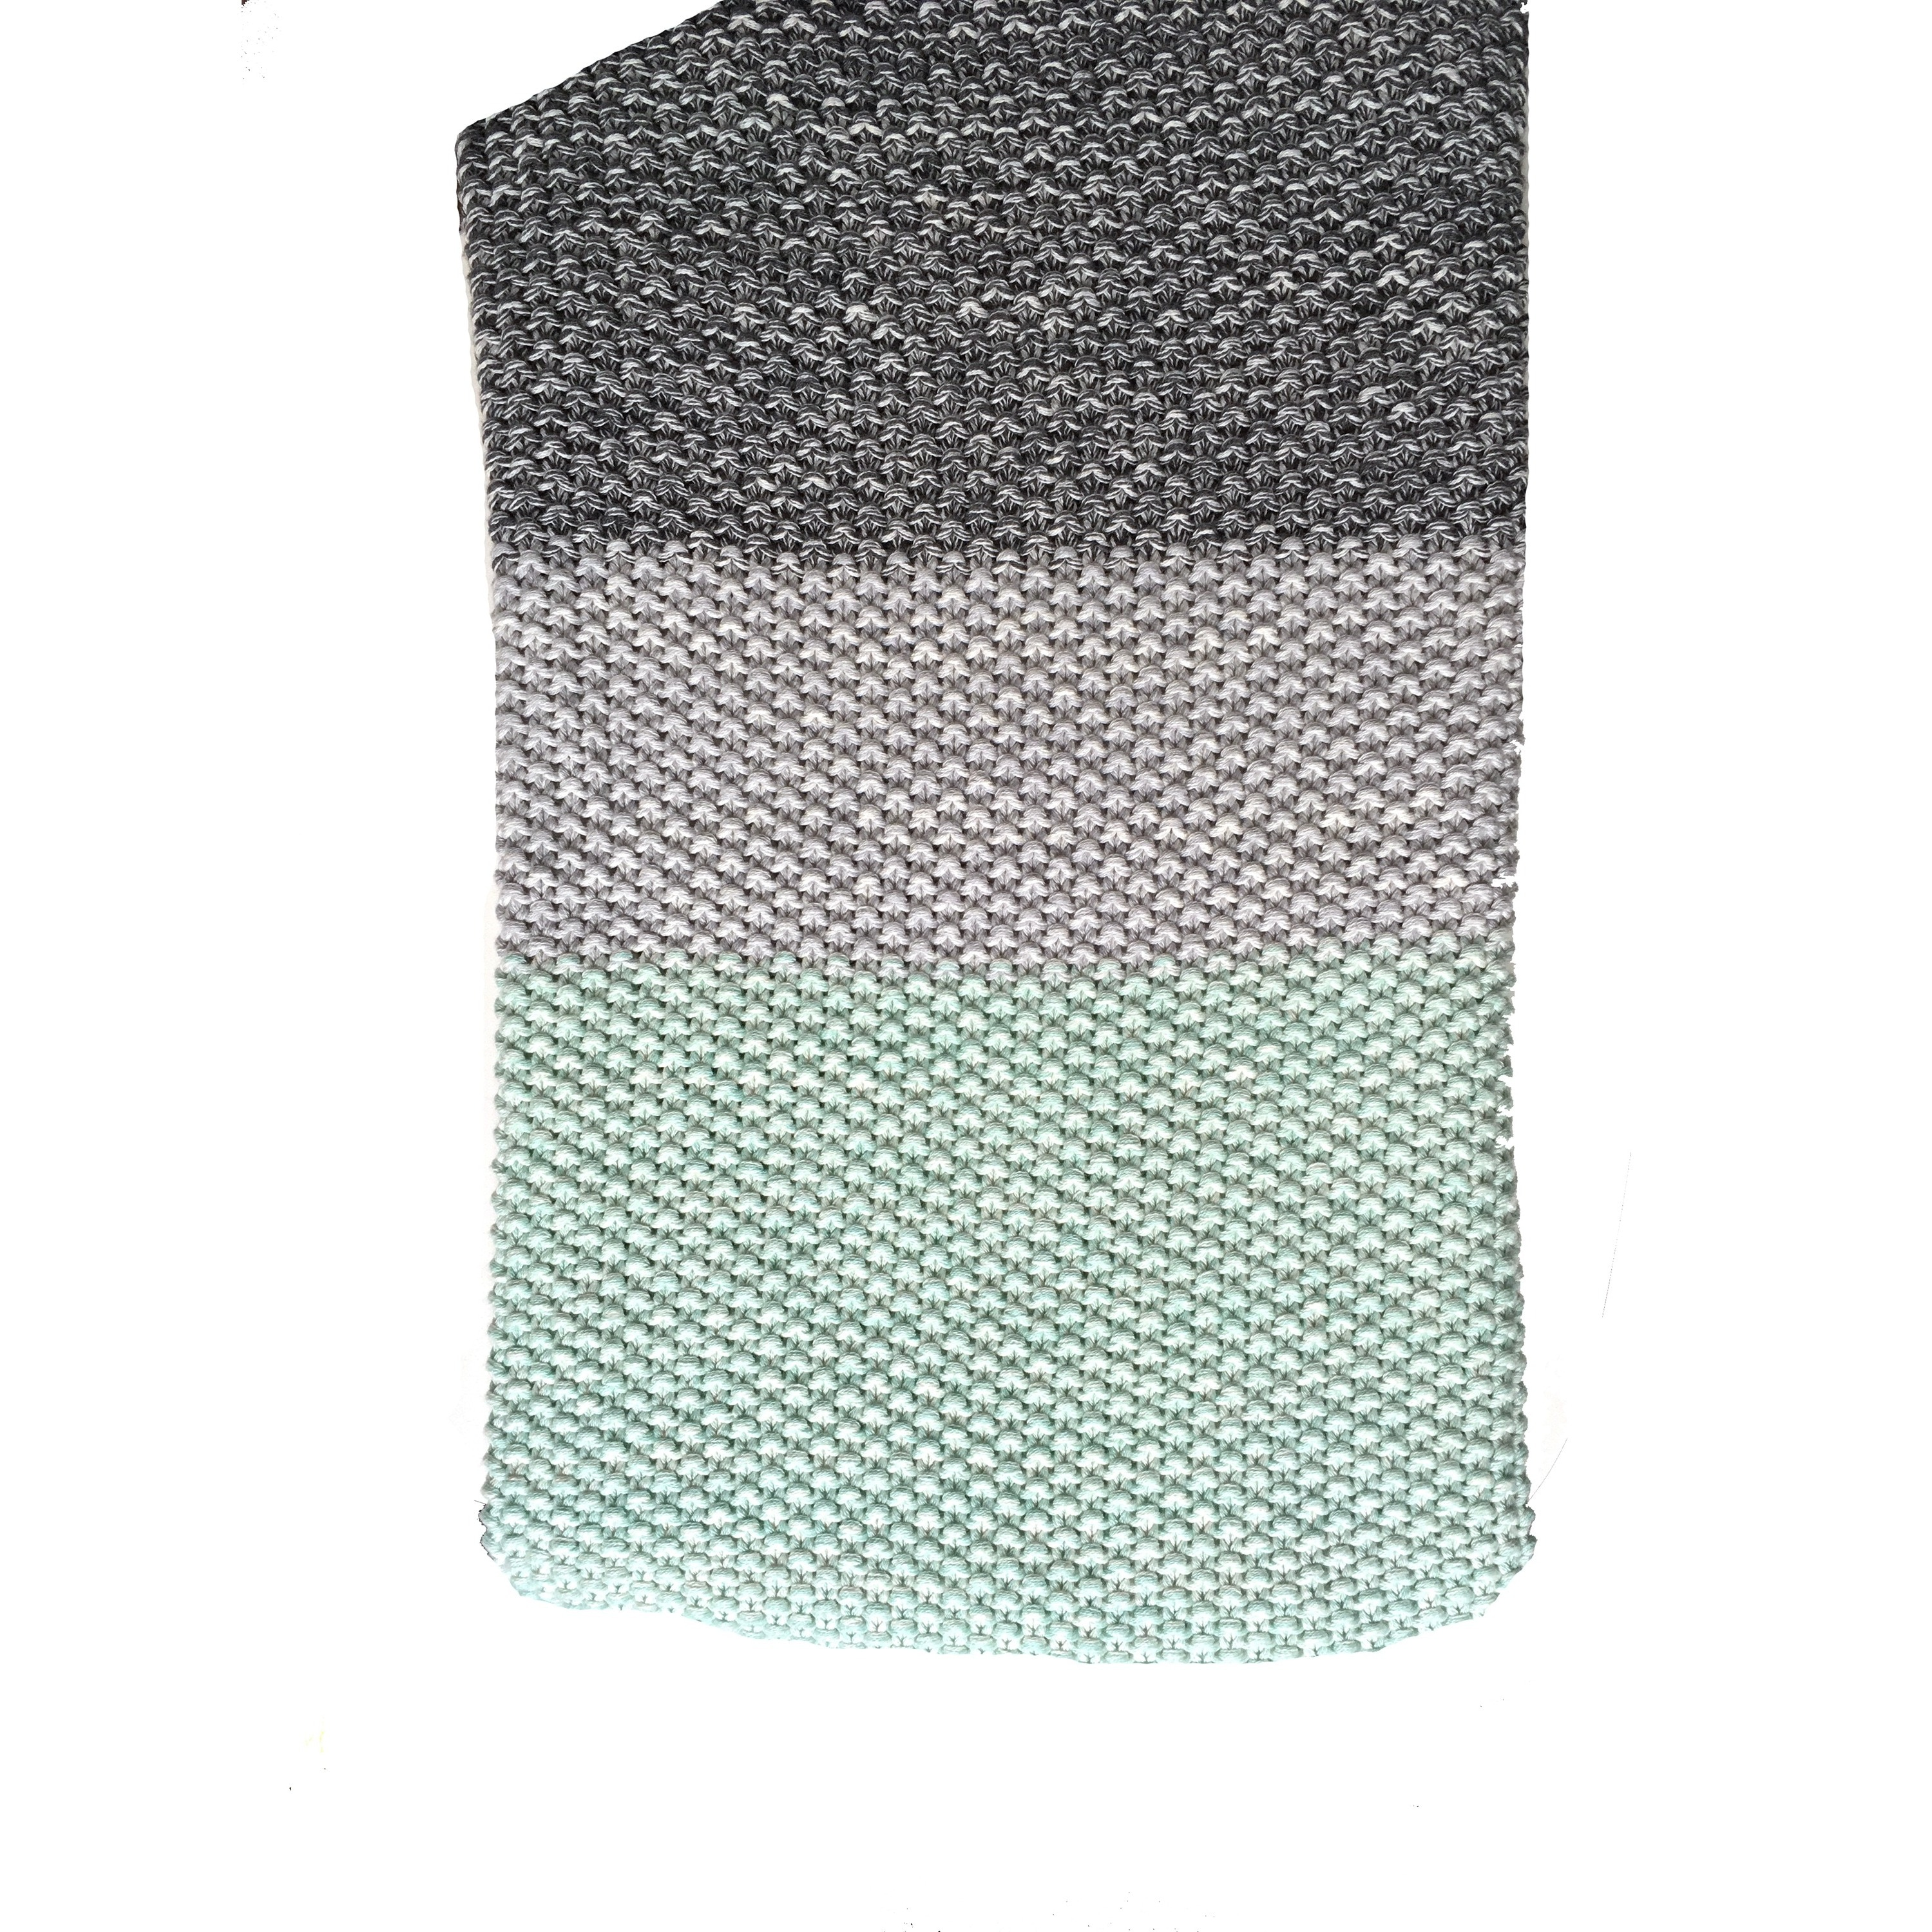 Vena Collection Green Grey Striped Cotton Throw Blanket By Pink Lemonade Free Shipping Today 16402683